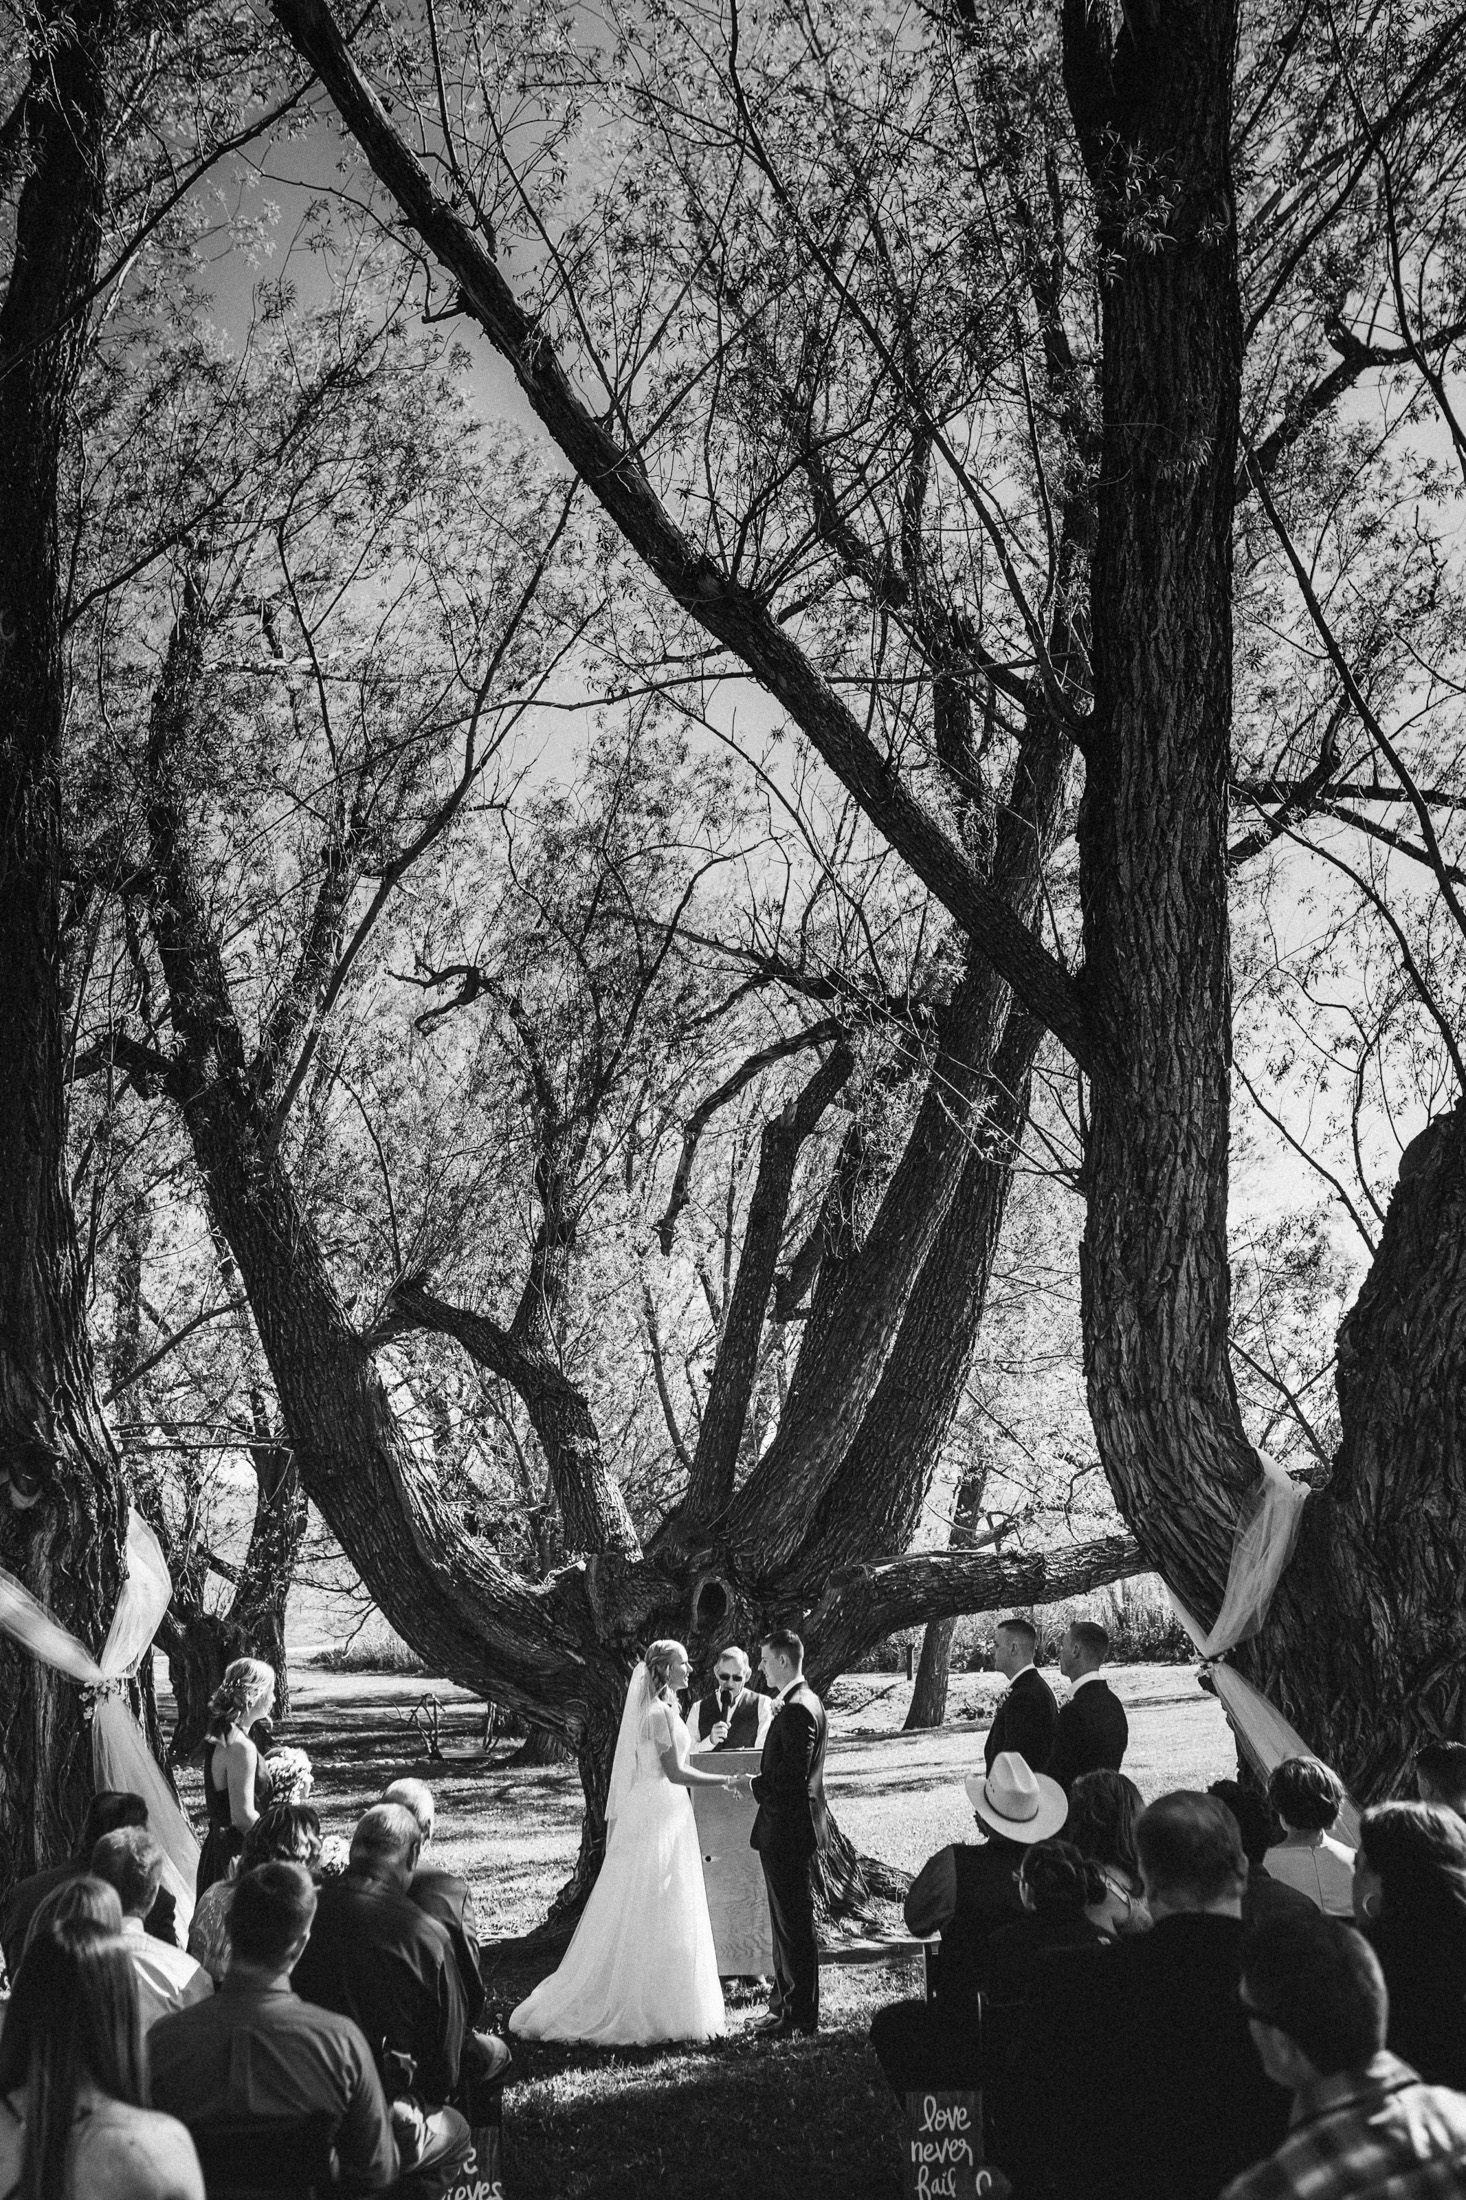 Black and white photograph of wedding ceremony underneath Willow trees at Willow Vale Events.